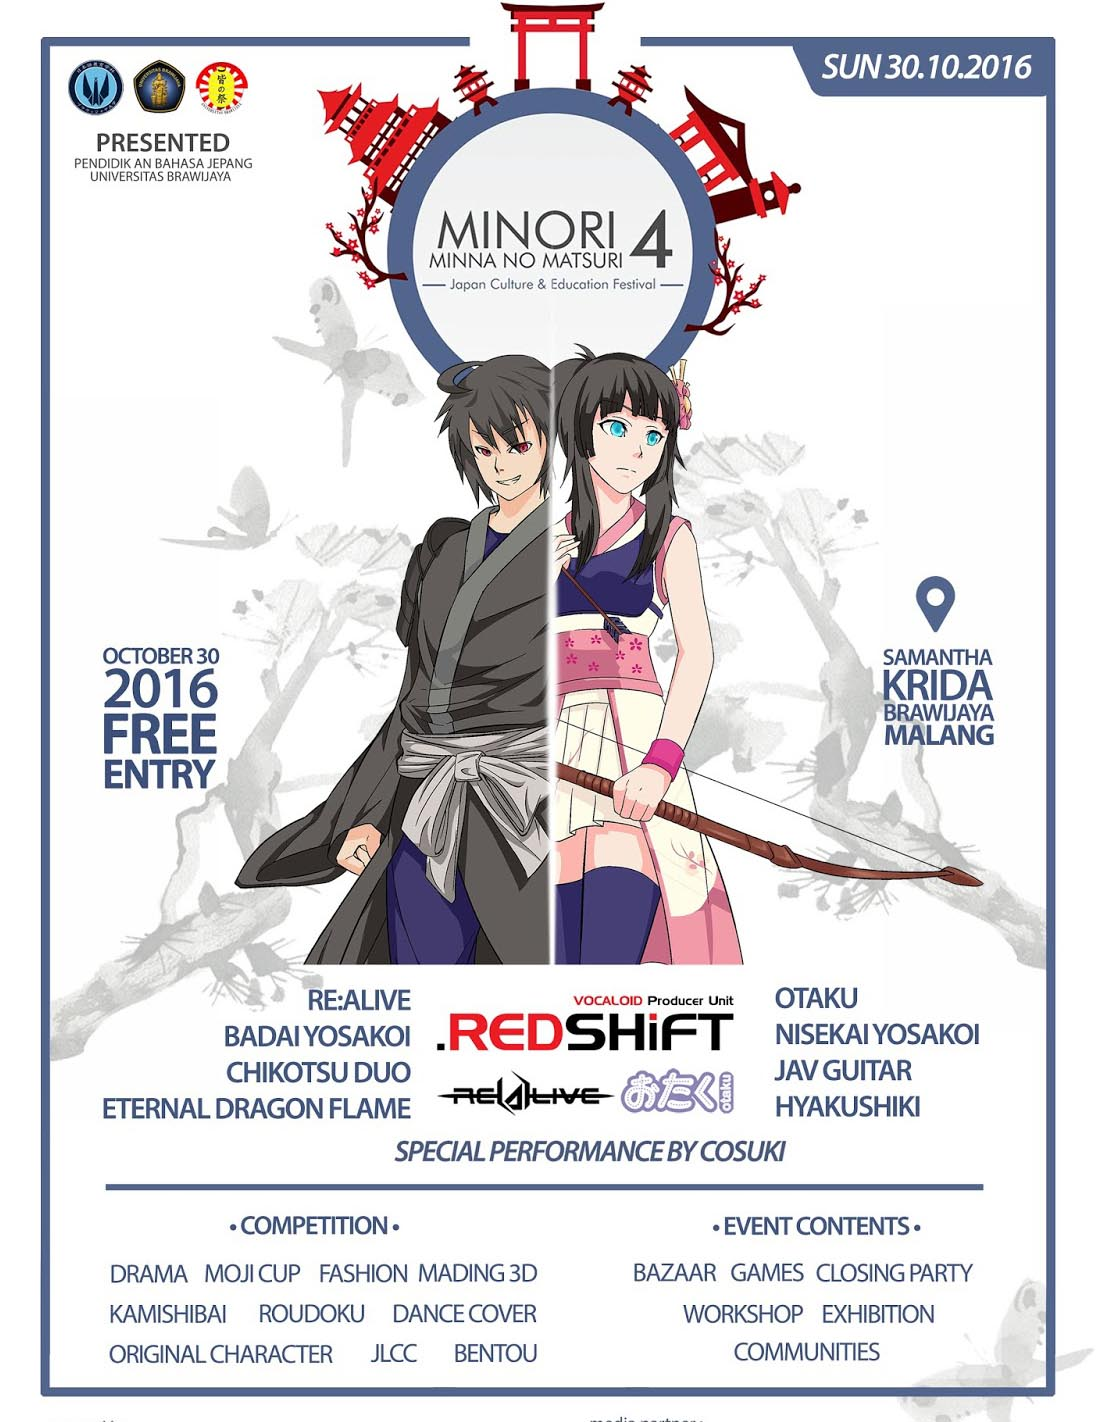 Minna no Matsuri 4 : Japan Culture and Education Festival - Universitas Brawijaya, 30 Okt 2016